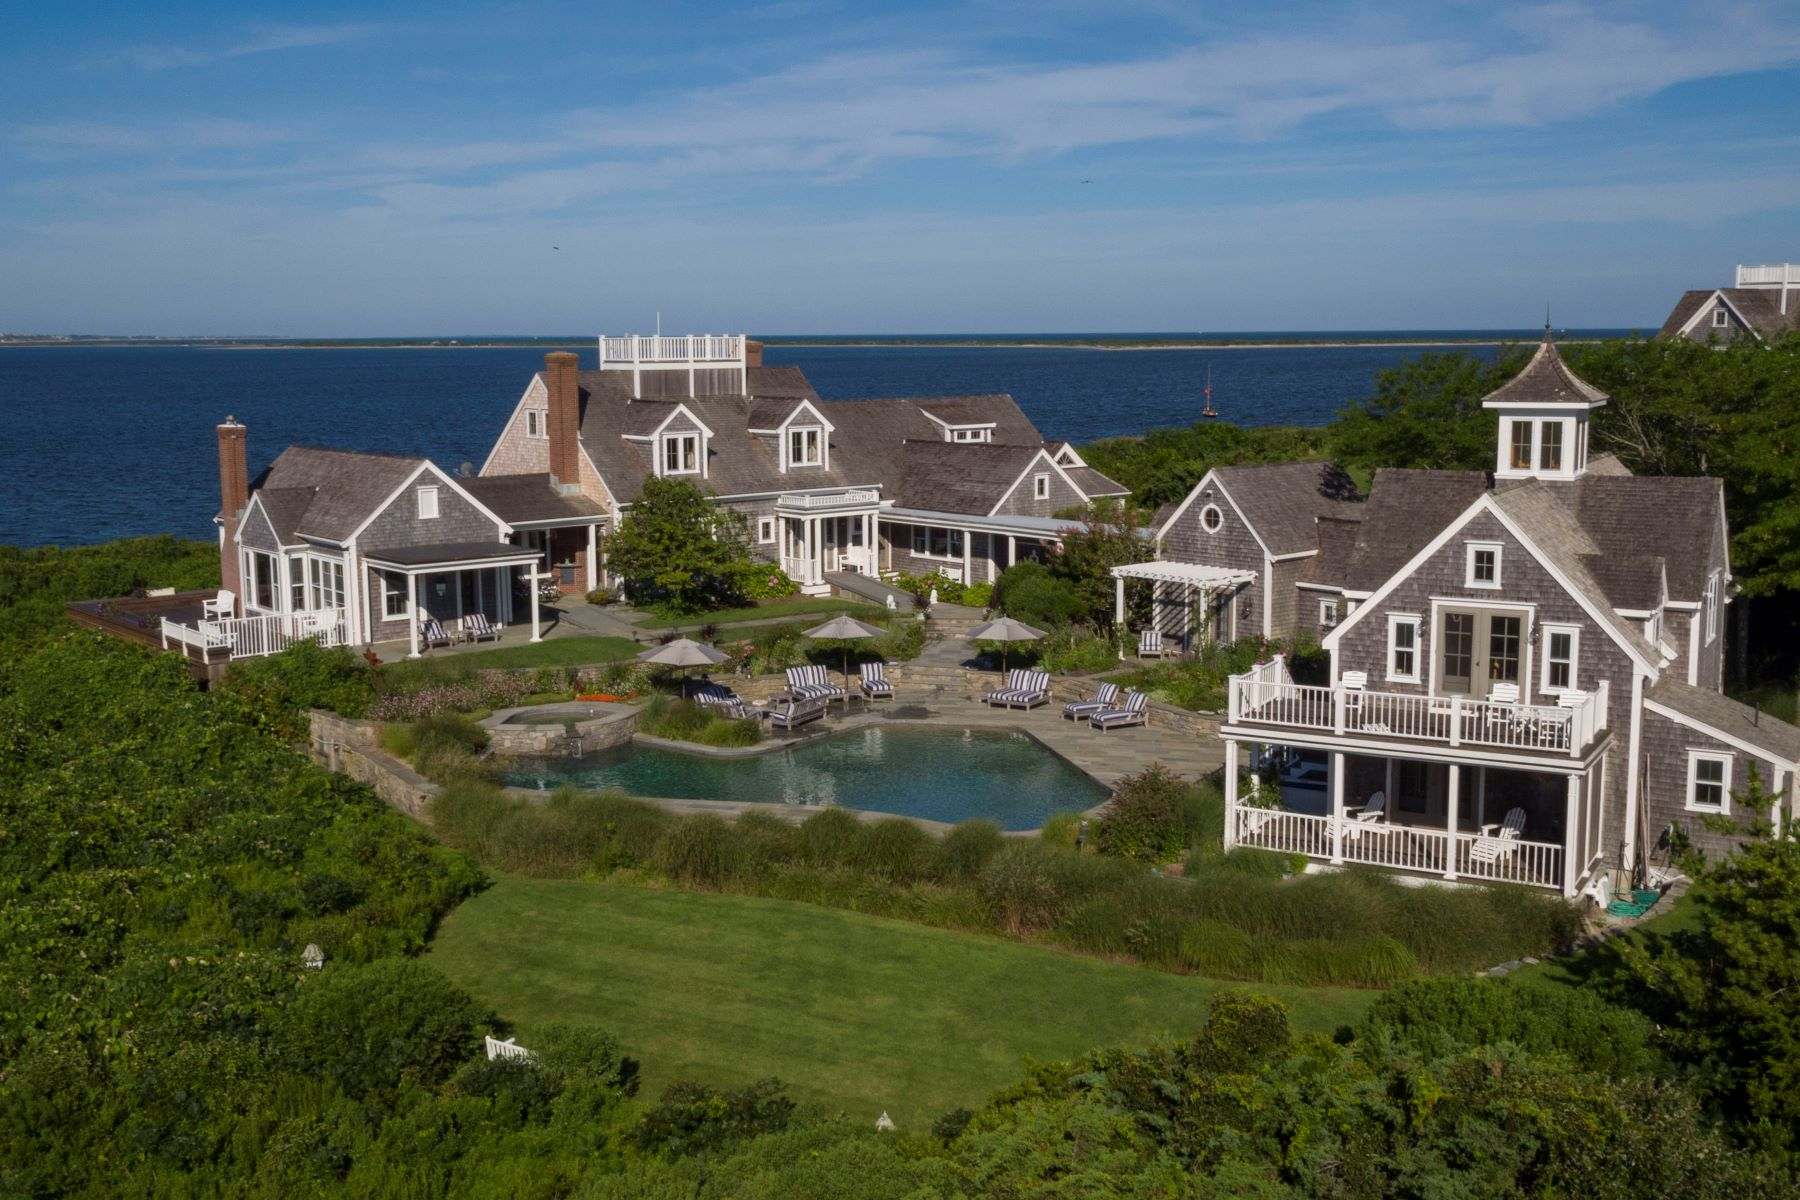 Maison unifamiliale pour l Vente à Entirely Unique Waterfront Estate 72 Pocomo Road 78 Pocomo Road Nantucket, Massachusetts, 02554 États-Unis